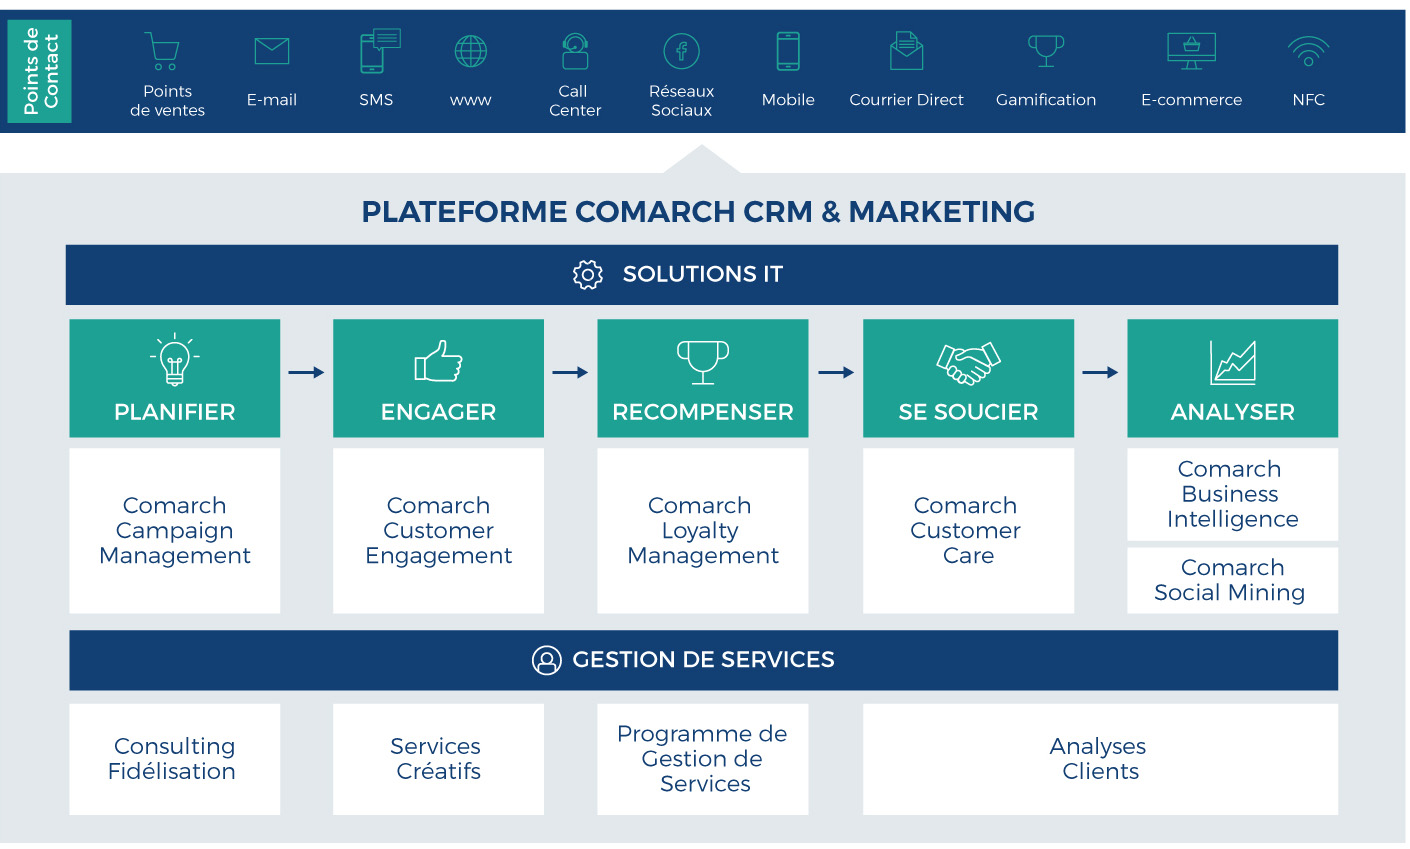 plateforme crm & marketing comarch